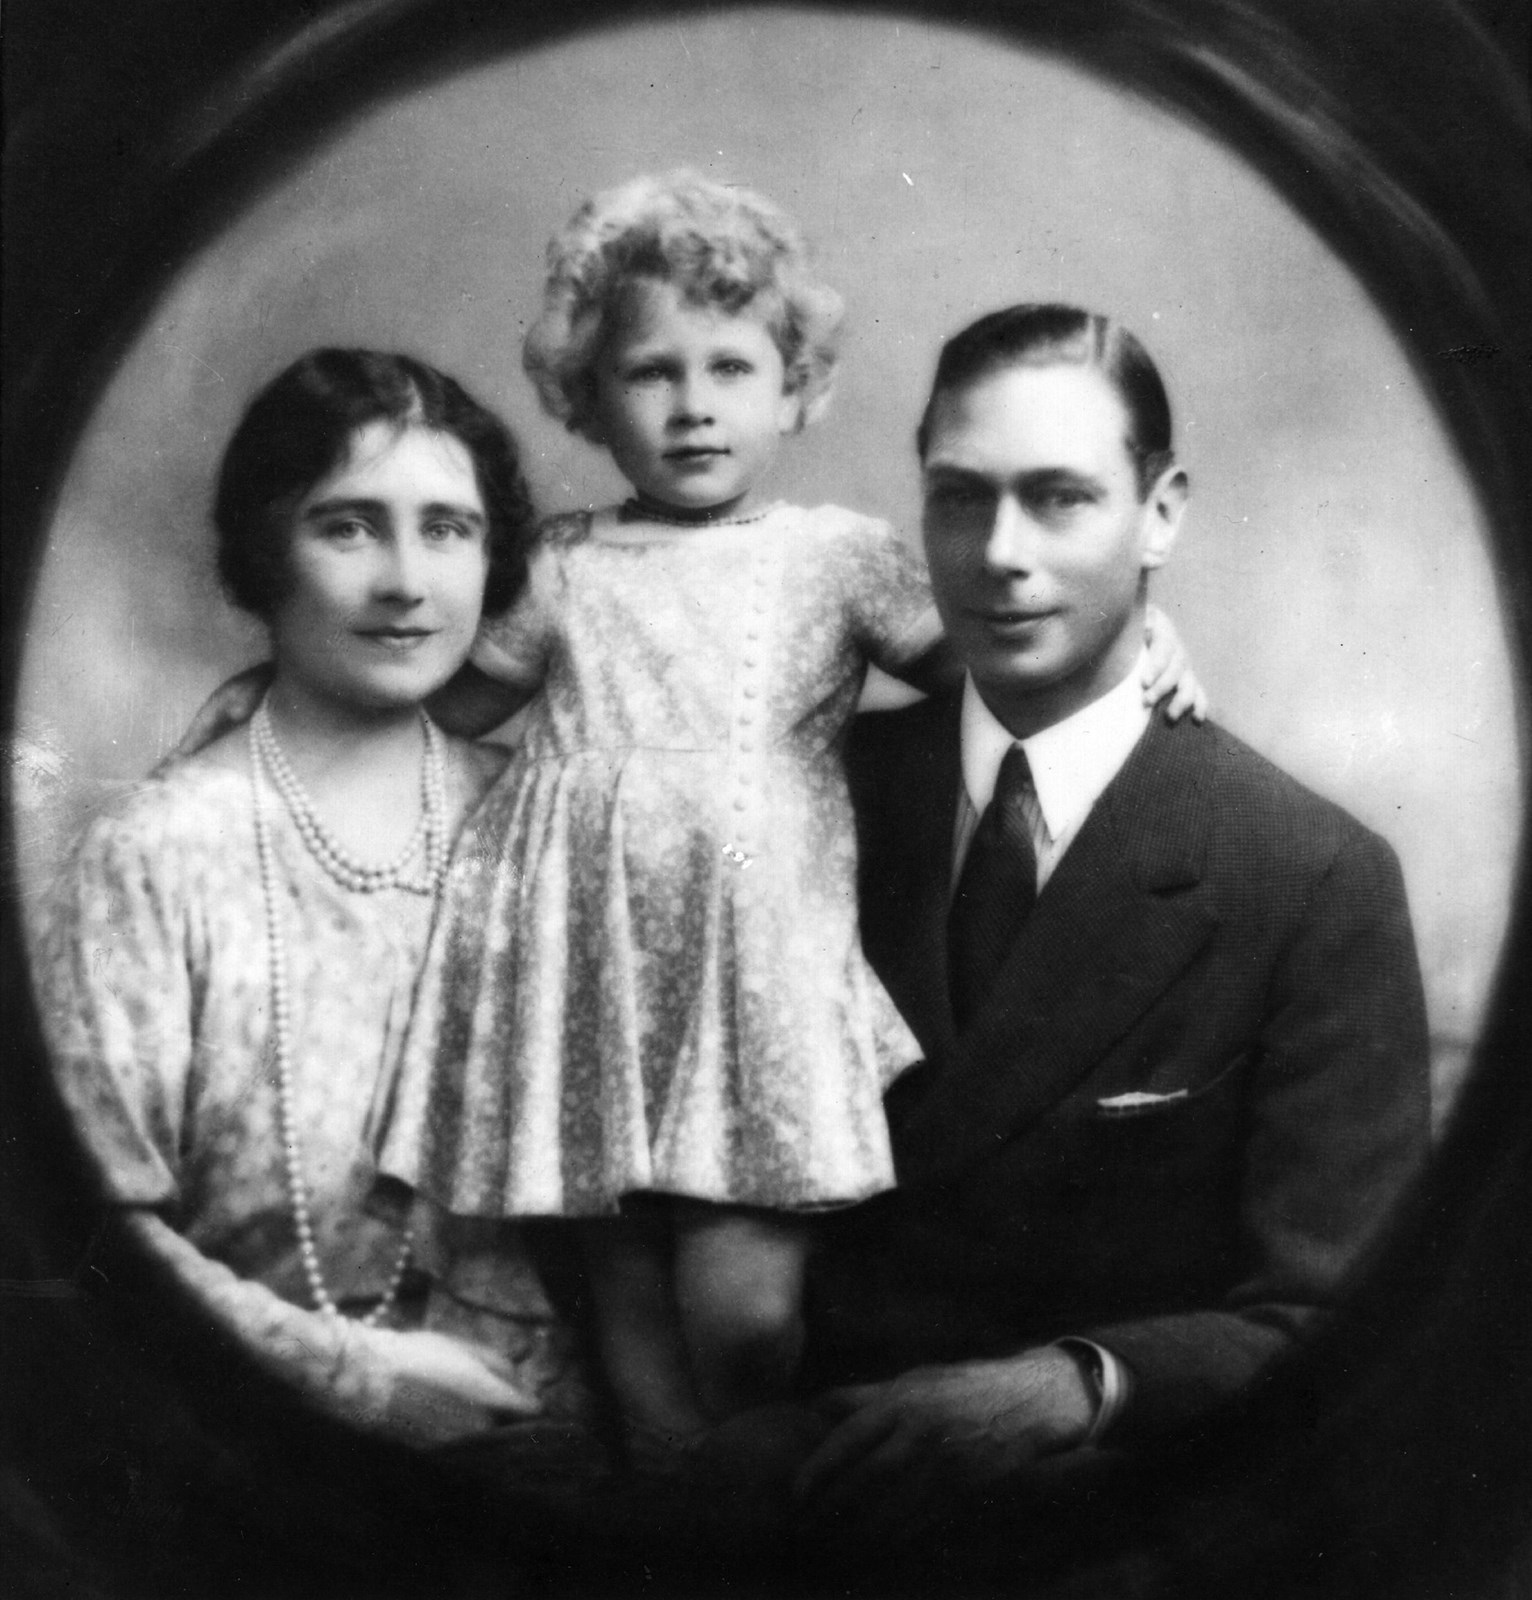 king george single parents King george v and queen  politics & society politics and government political theory monarchy who were the parents of king george vi  in digital single lens.